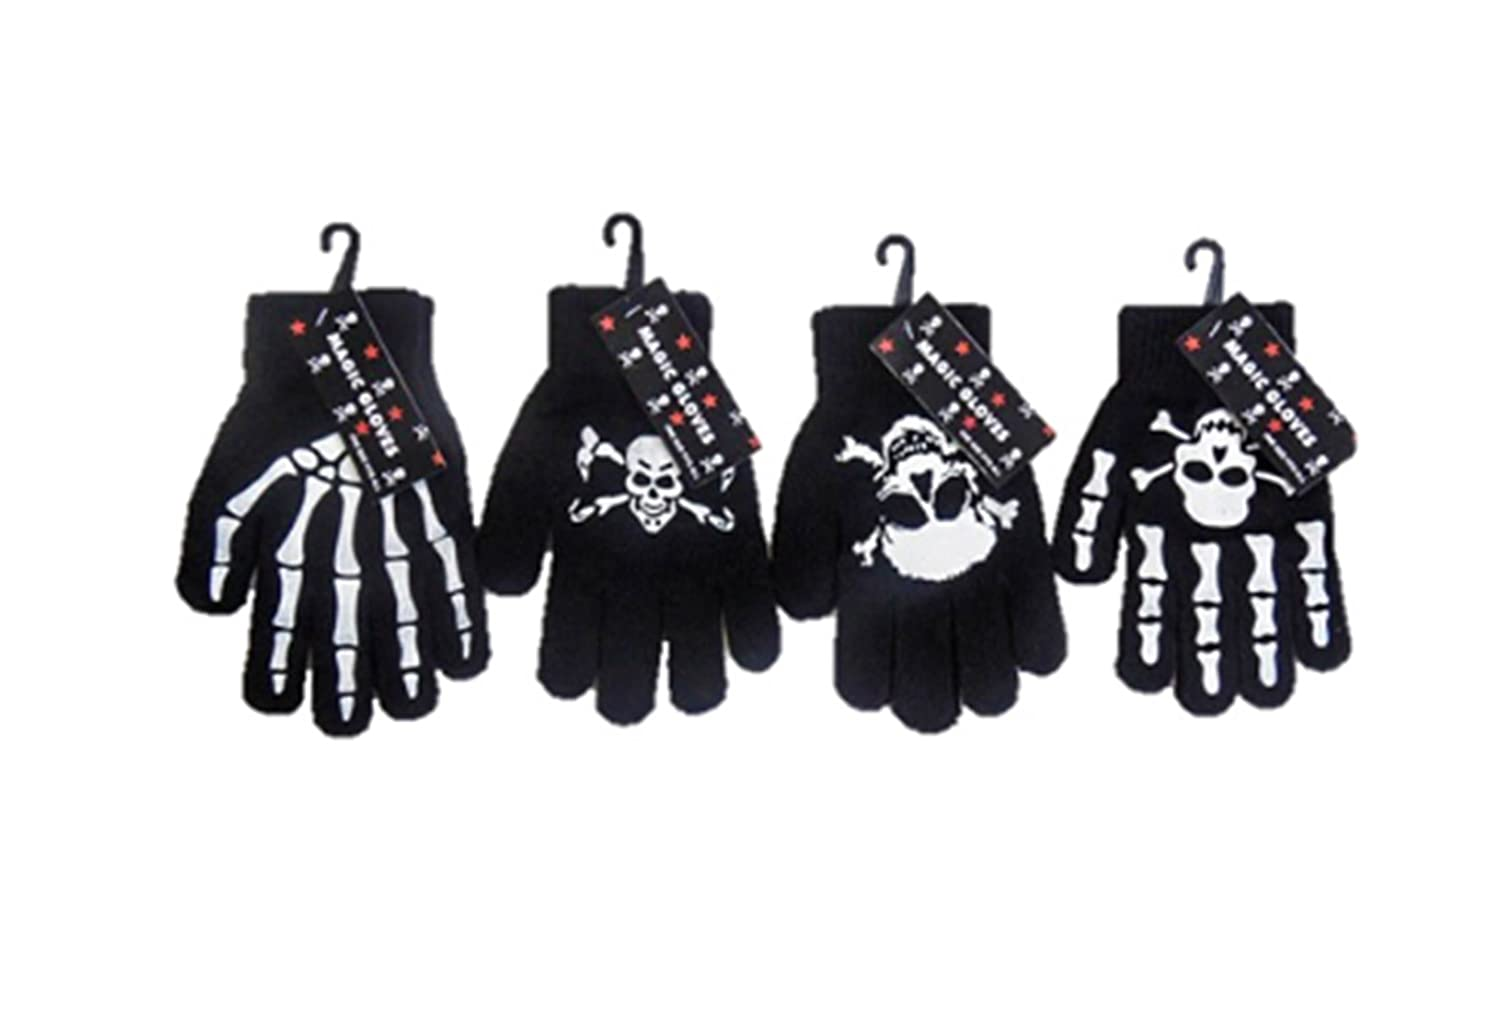 Childrens/Boys/Girls/Kids Magic Gloves Skulls Bones Skeleton - 4 Pack